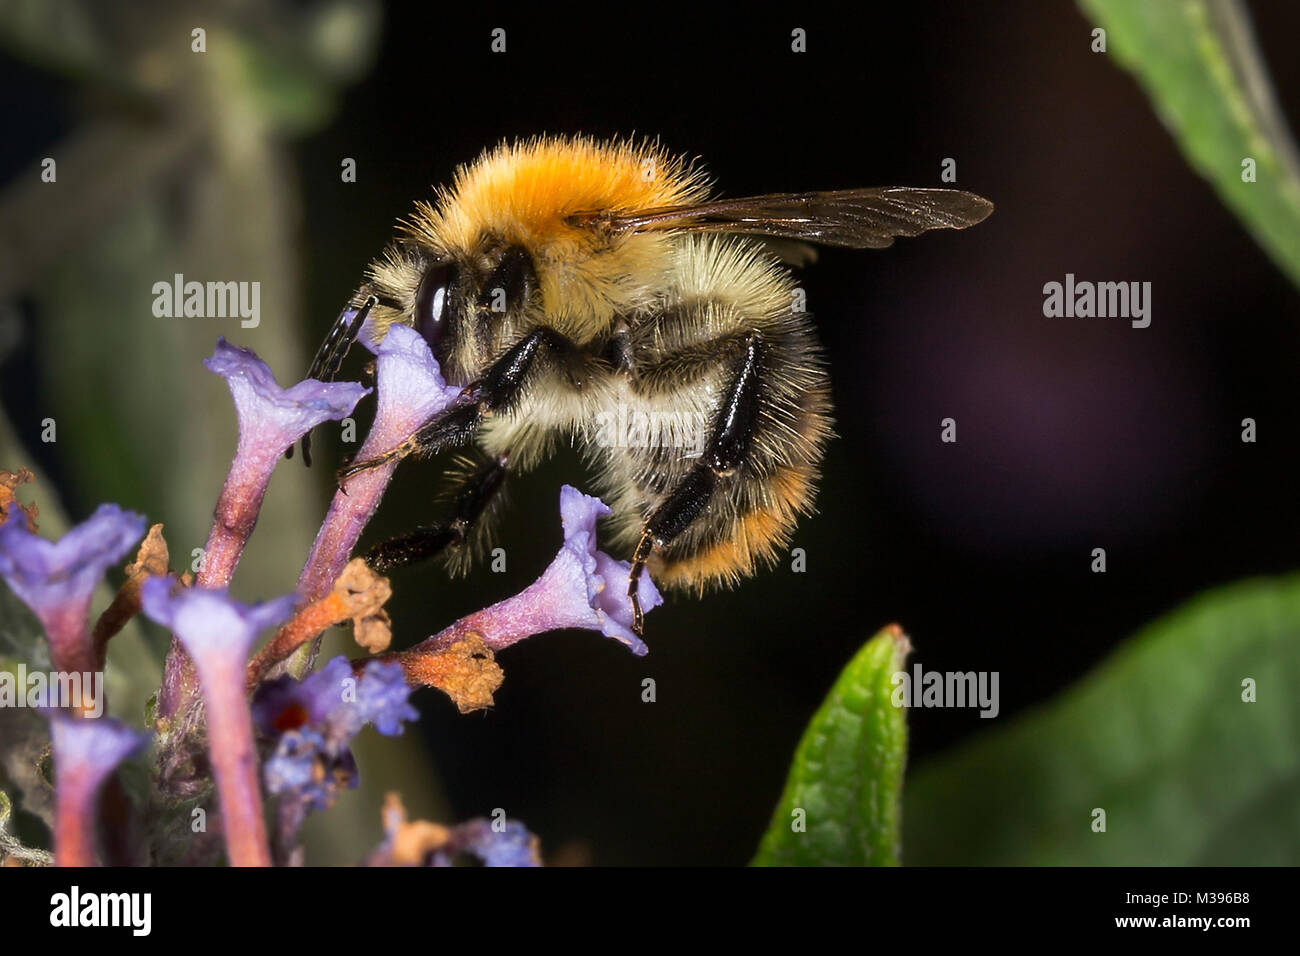 A bumble bee feeding on nectar from a Budlea flower. Either a male, or a Cuckoo Bumble Bee as it has no pollen sack on it's hind leg. Stock Photo